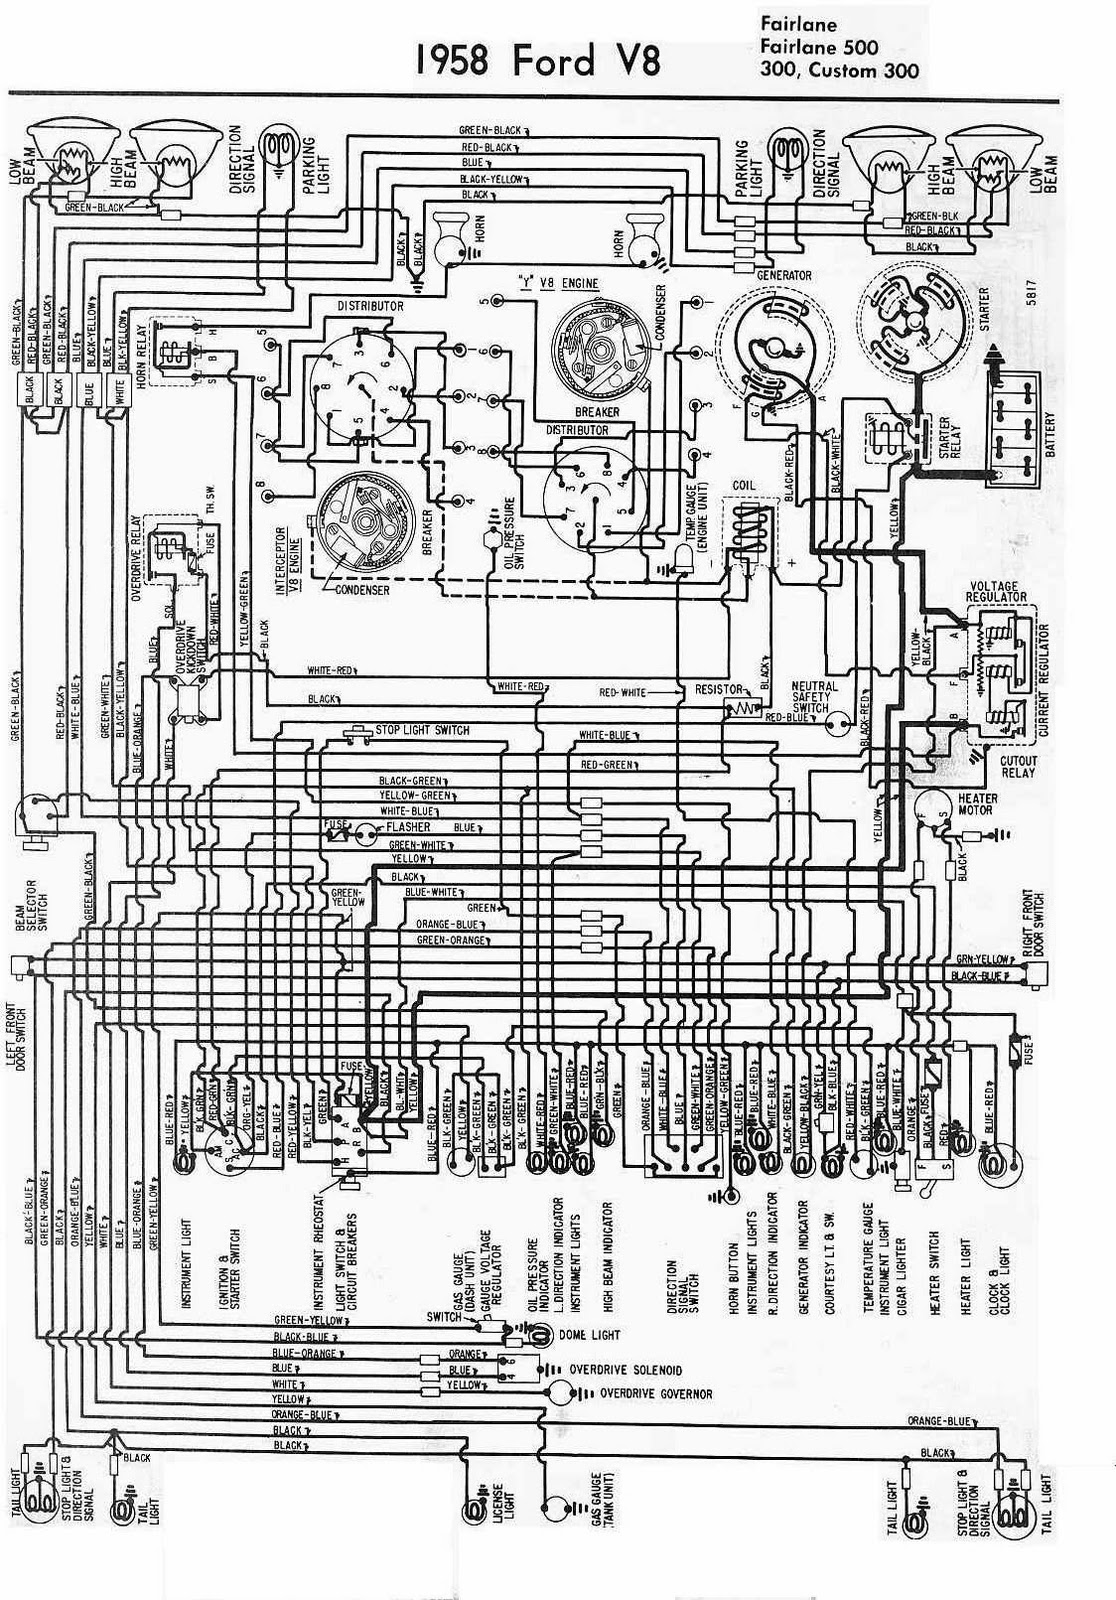 ford v6 distributor wiring diagram 5 wire flat trailer electrical for 1958 v8 | all about diagrams